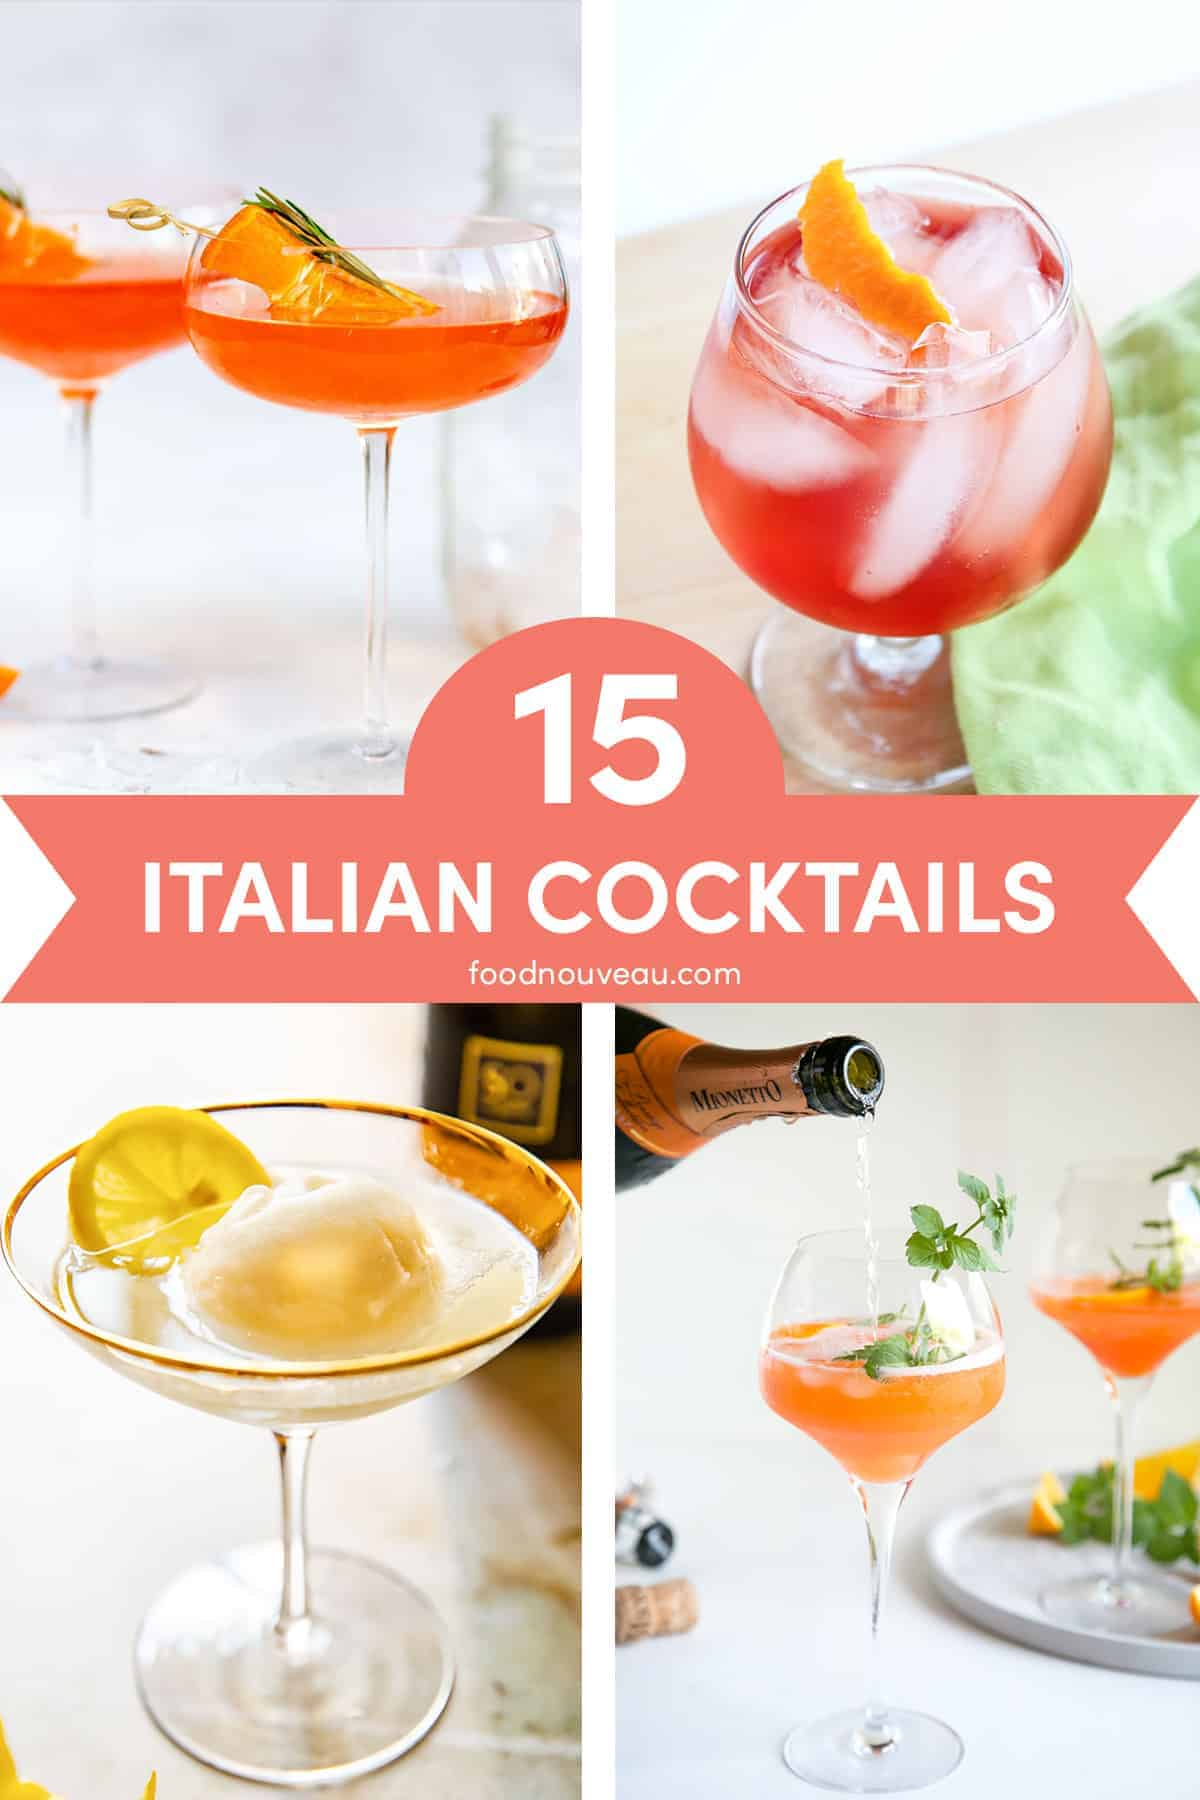 collage of 4 italian cocktails against light backgrounds